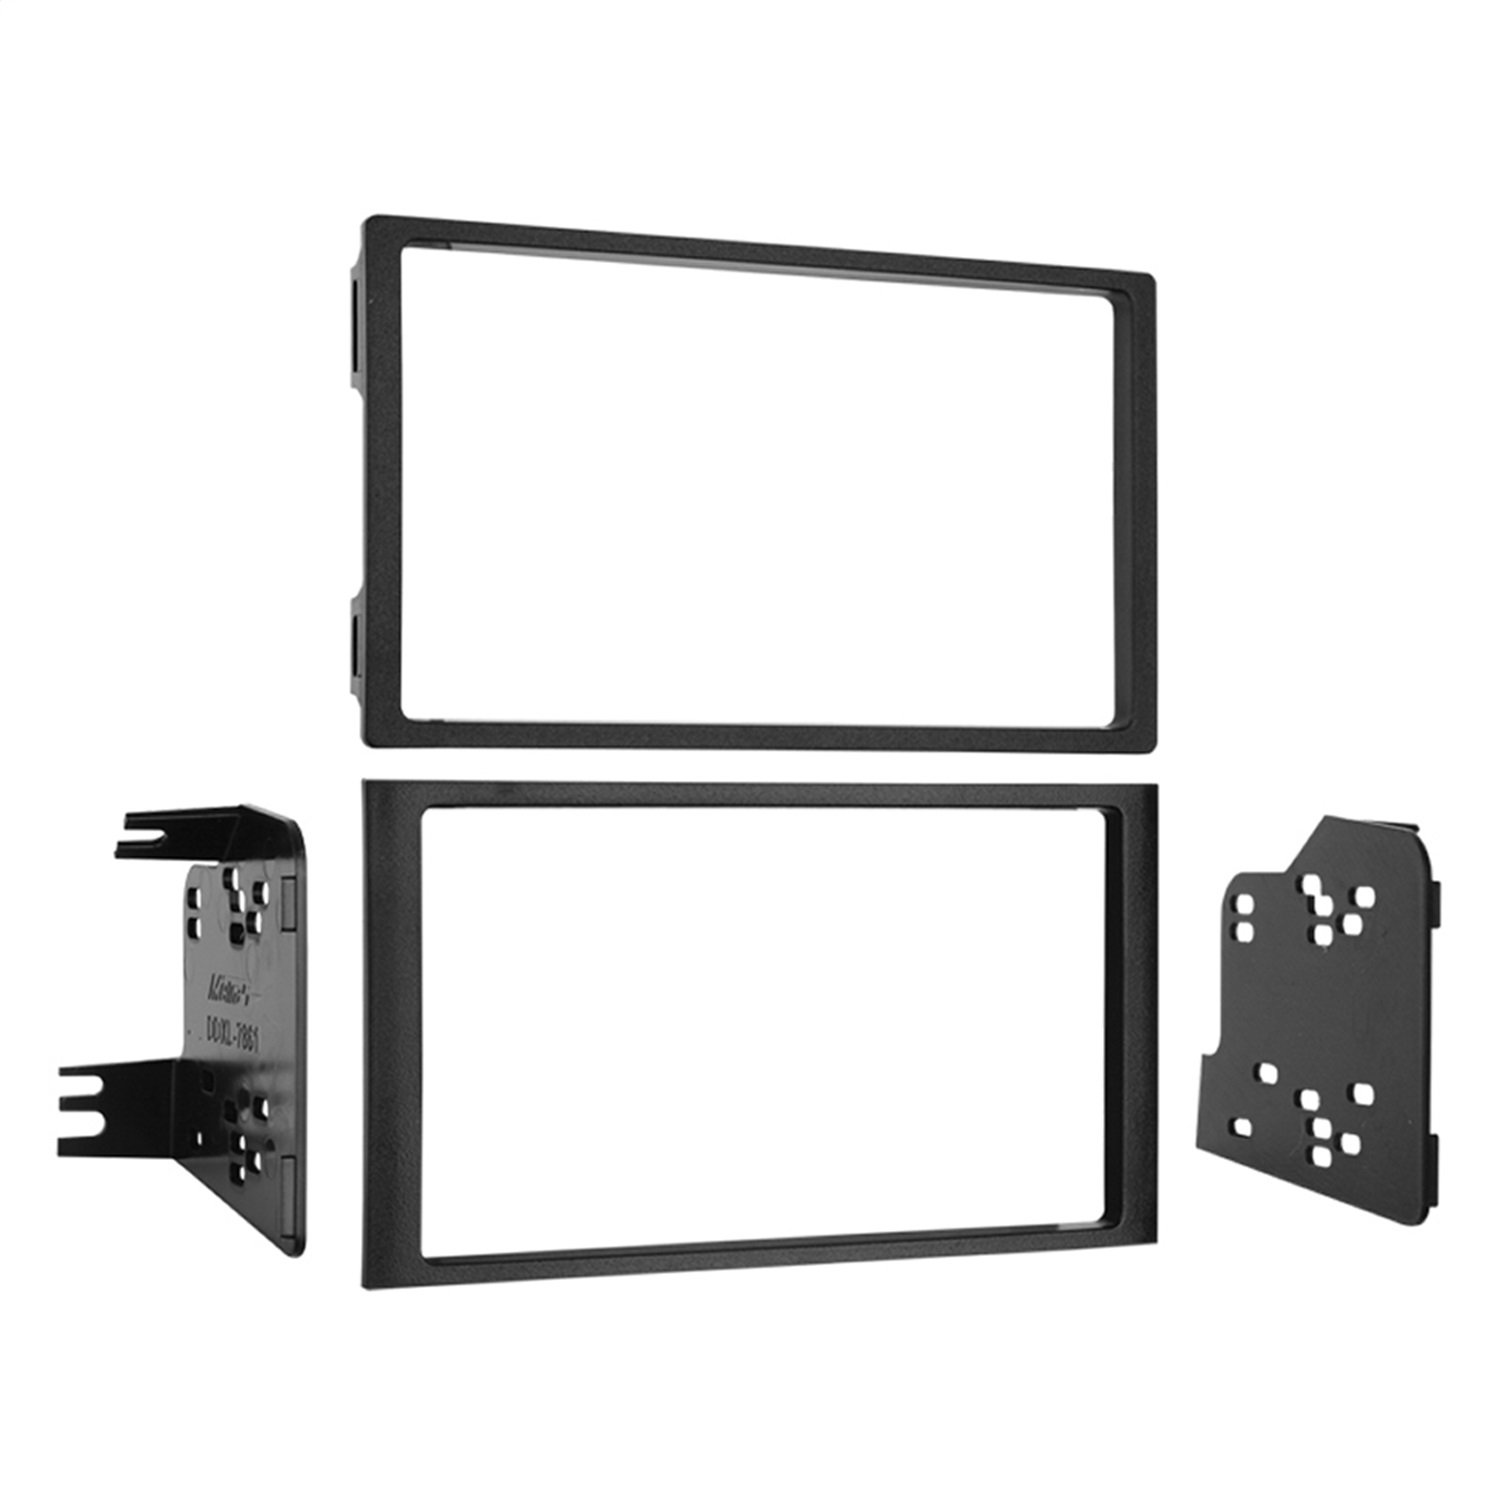 Metra 95-7861 Double DIN Installation Dash Kit for 2003-2008 Honda Pilot